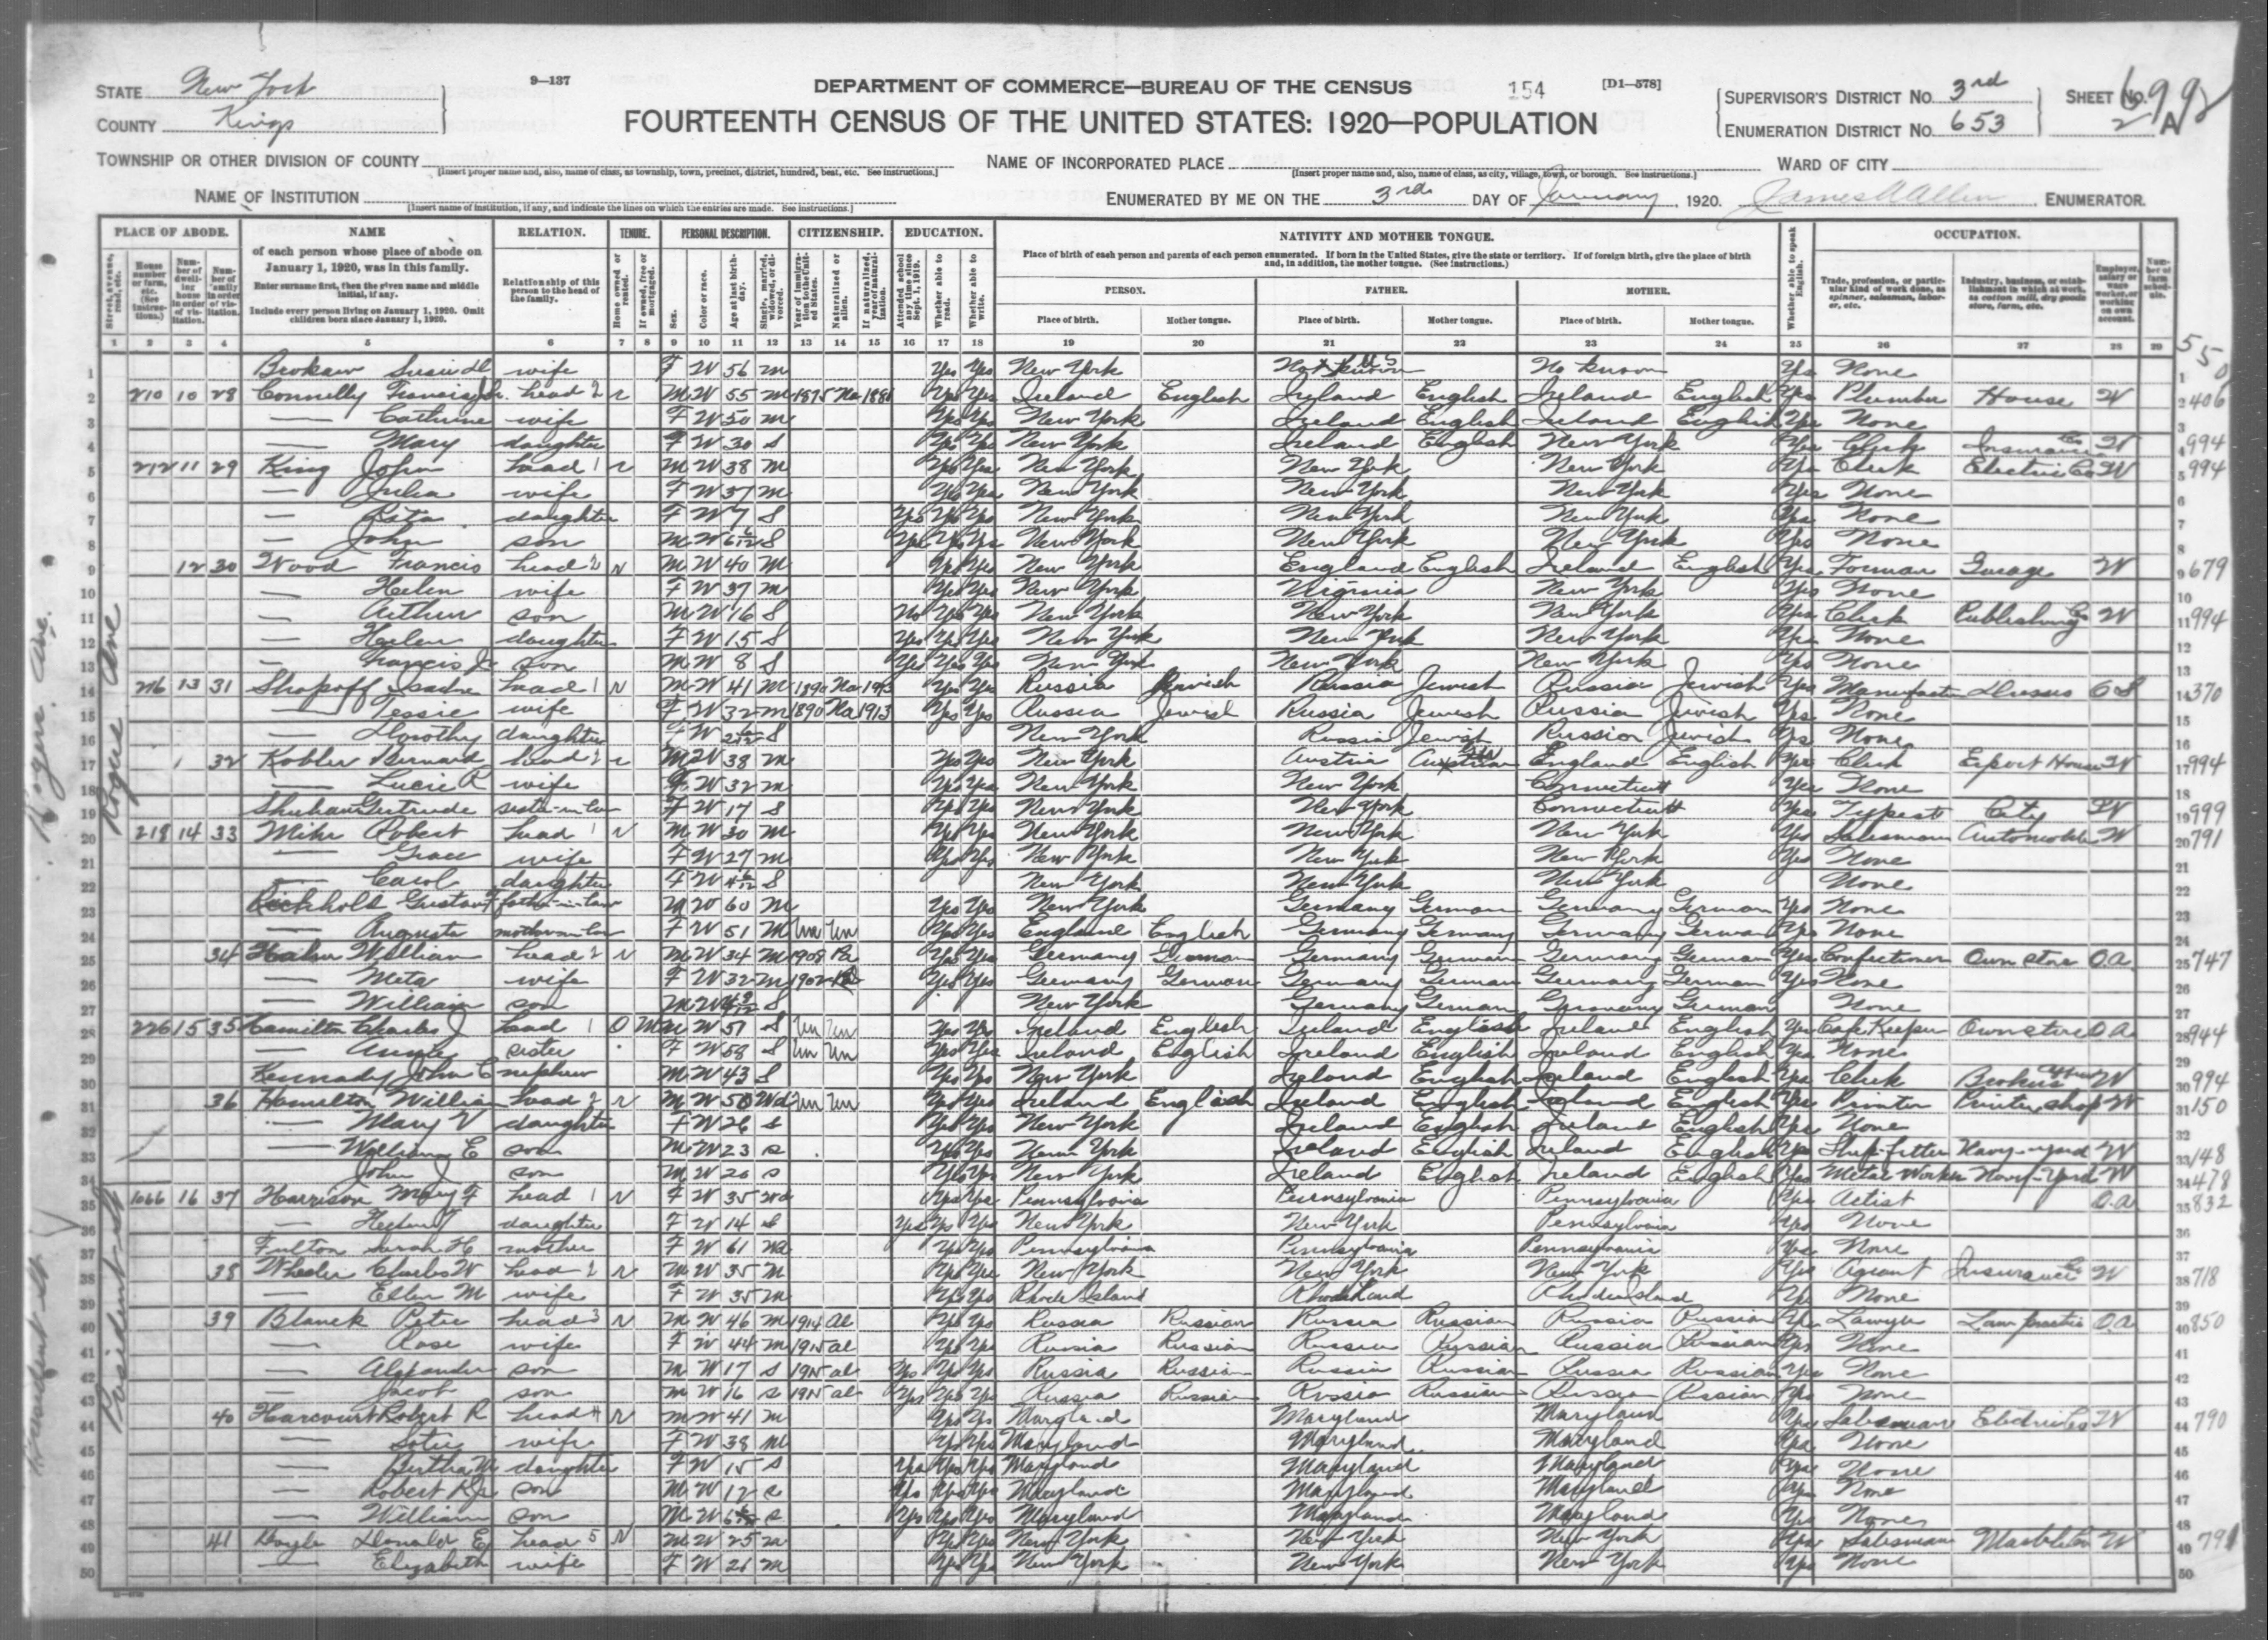 New York: KINGS County, Enumeration District 653, Sheet No. 2A